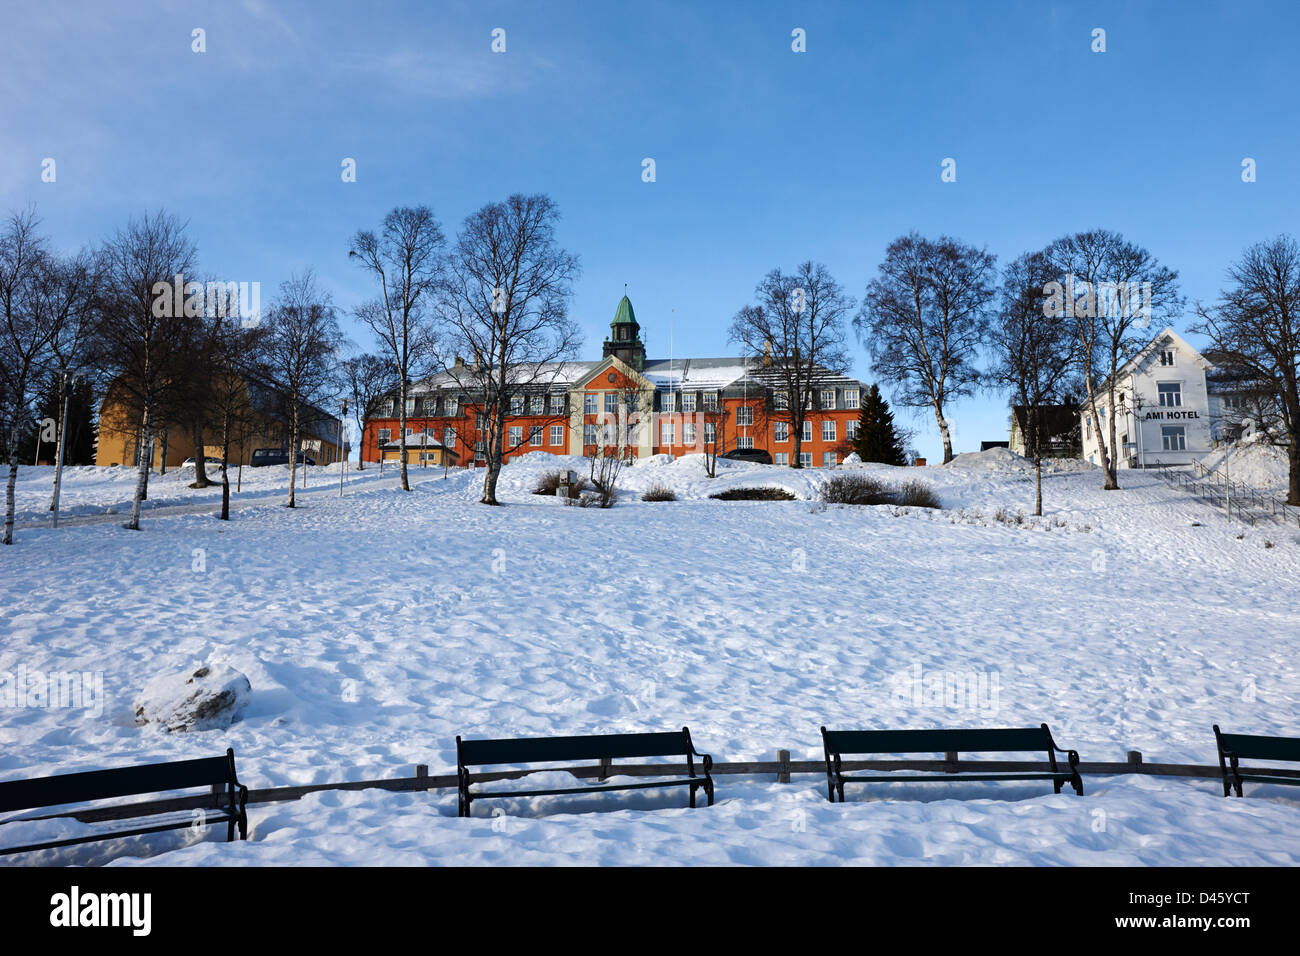 kings park in front of kongsbakken upper secondary school Tromso troms Norway europe - Stock Image